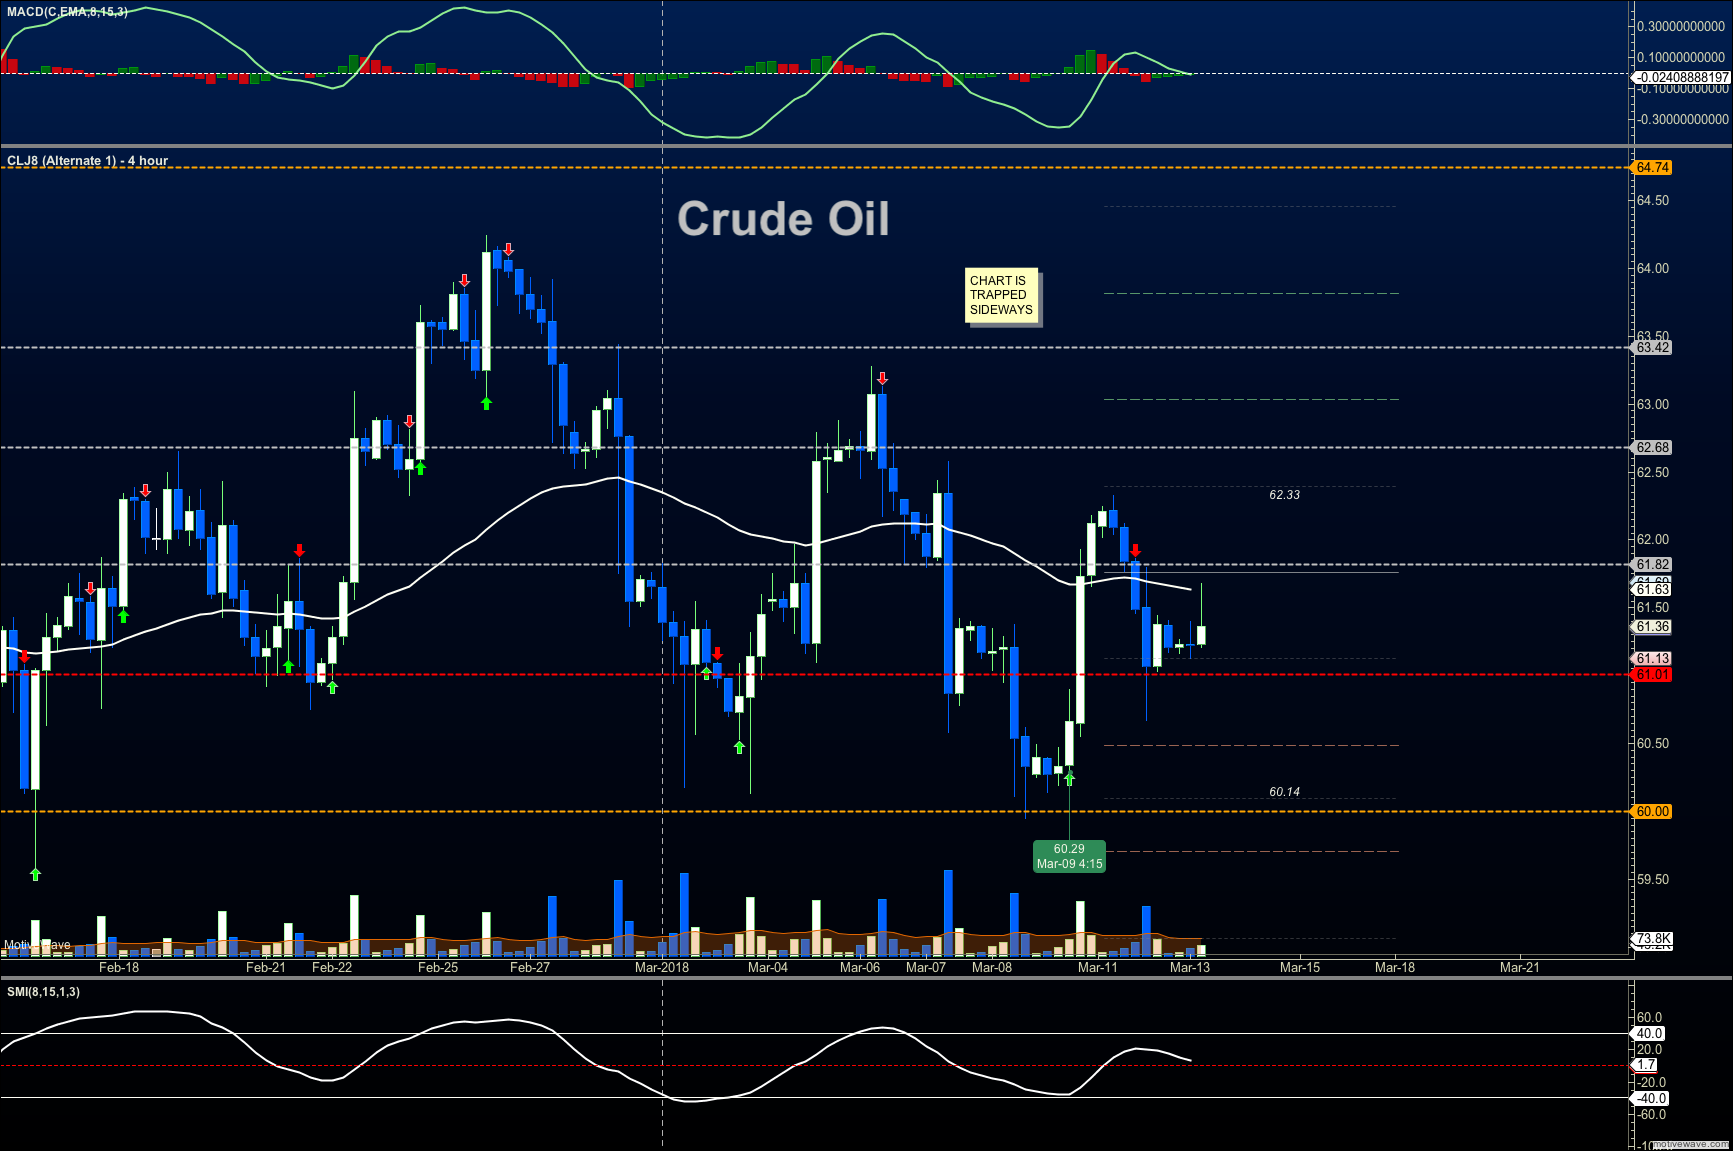 crude oil trading price resistance march 13 news research